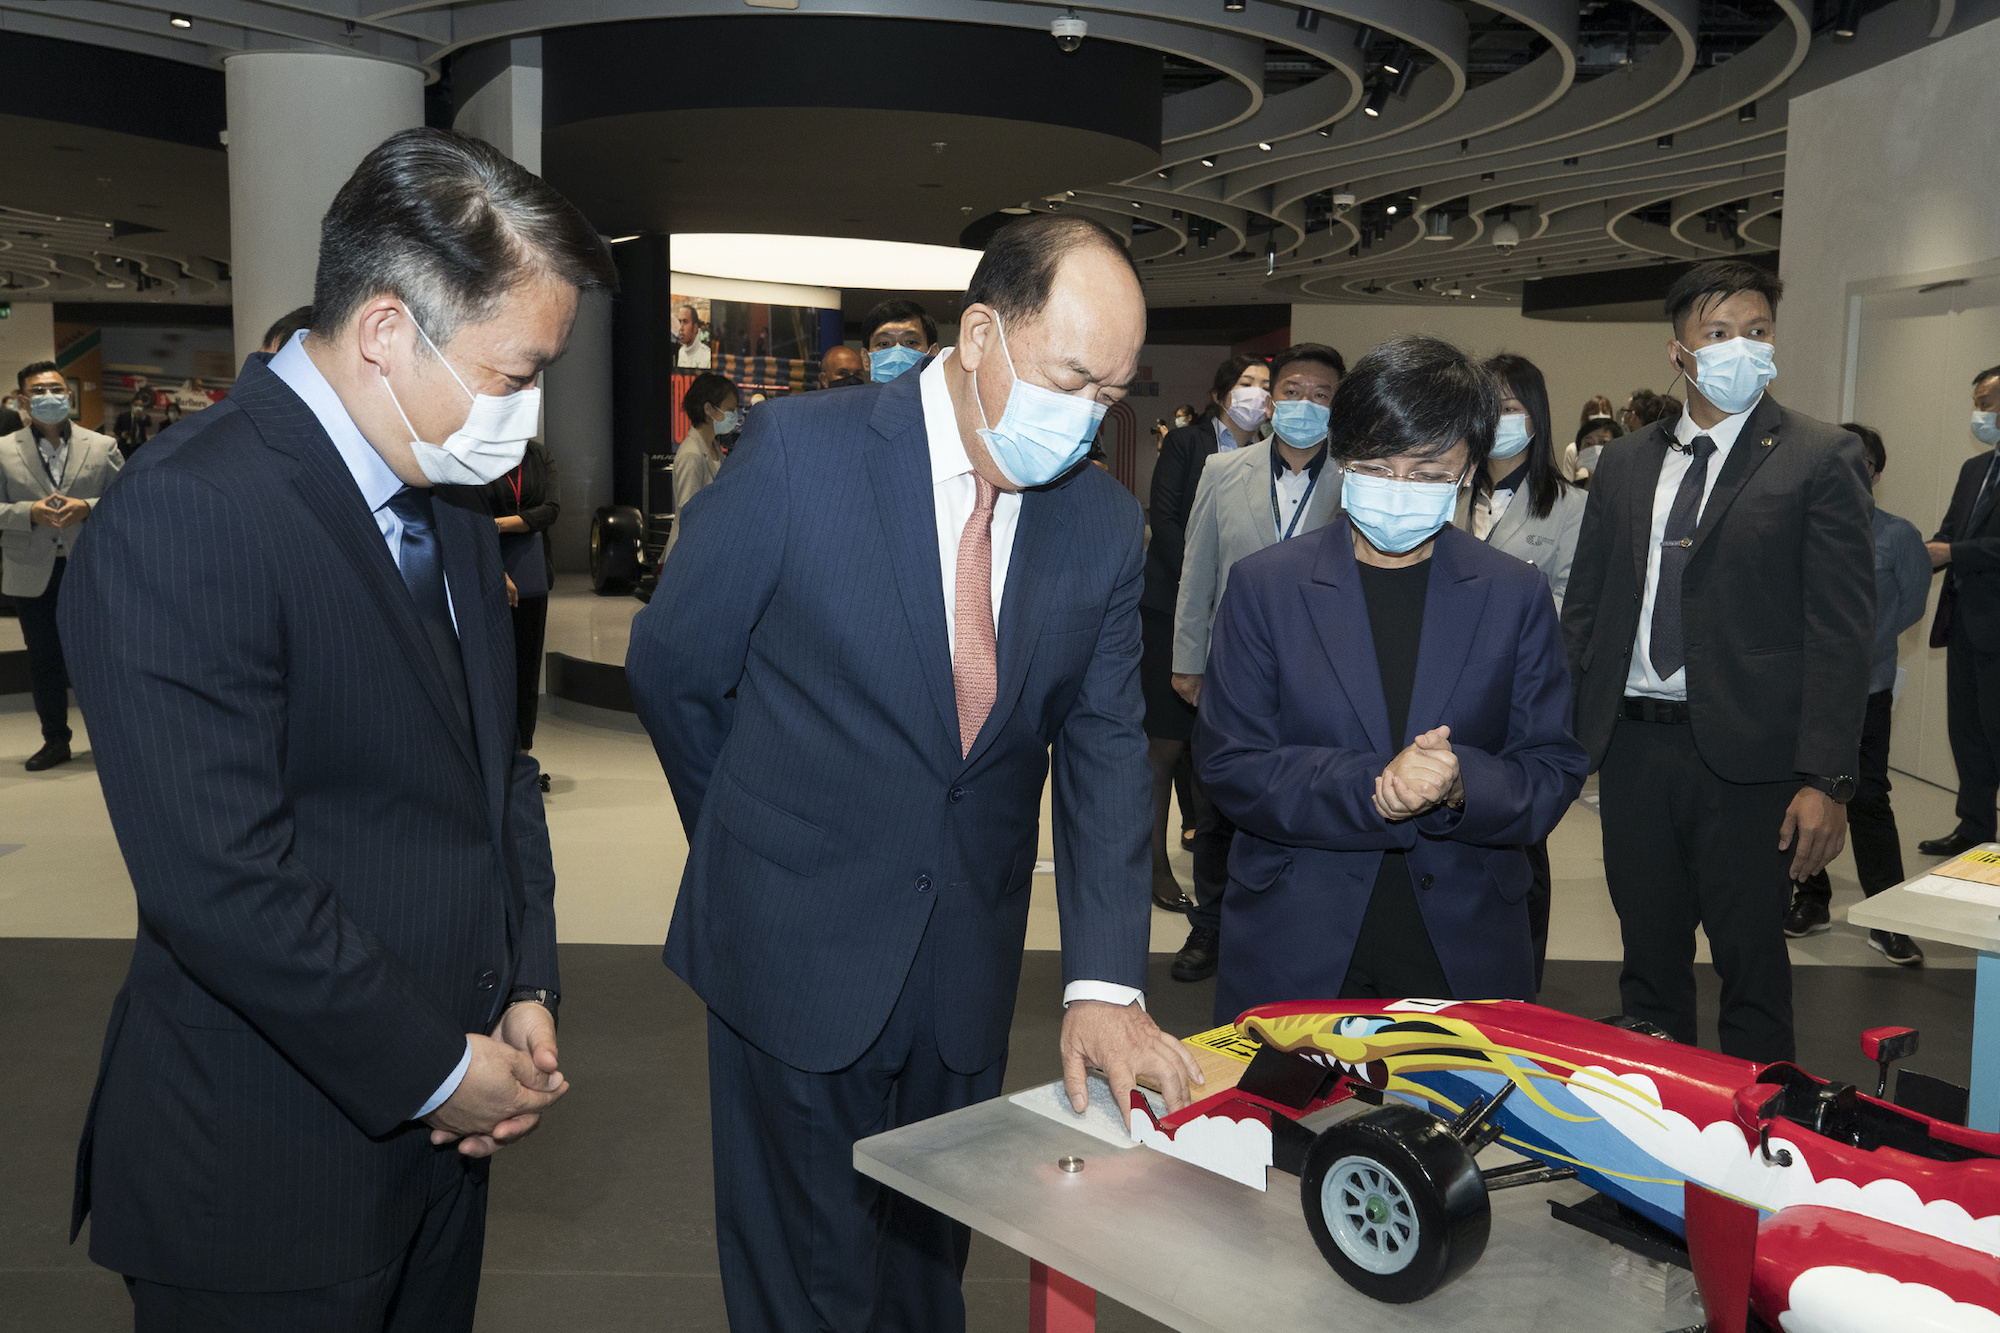 Chief Executive Ho Iat Seng officially inaugurated the Macao Grand Prix Museum on 1st June